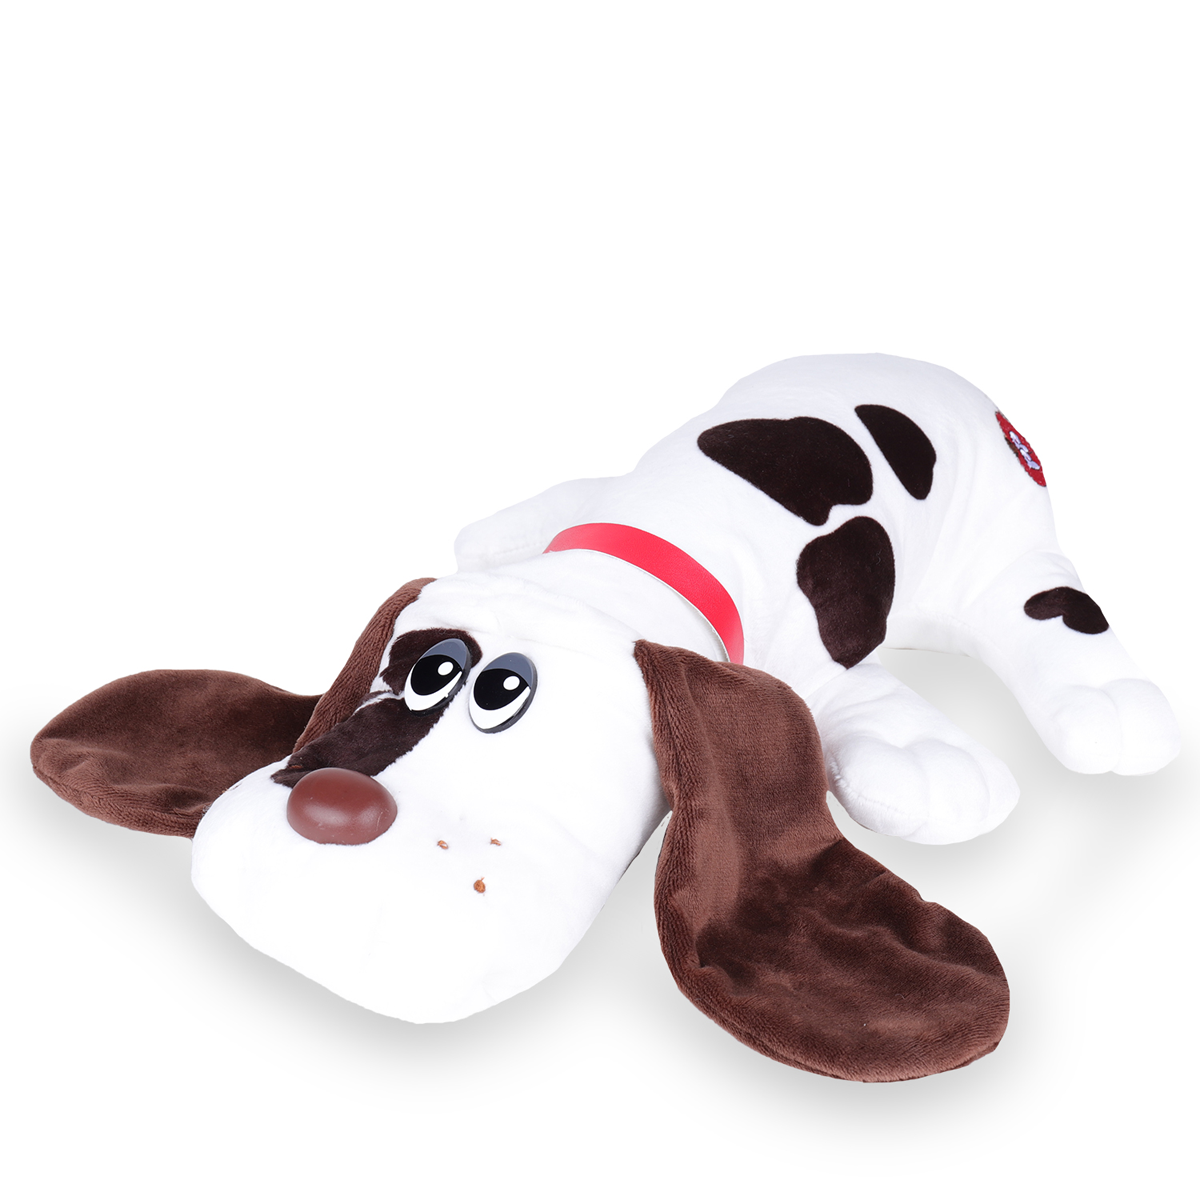 Pound Puppies Classic Plush Toy White With Spots The Entertainer